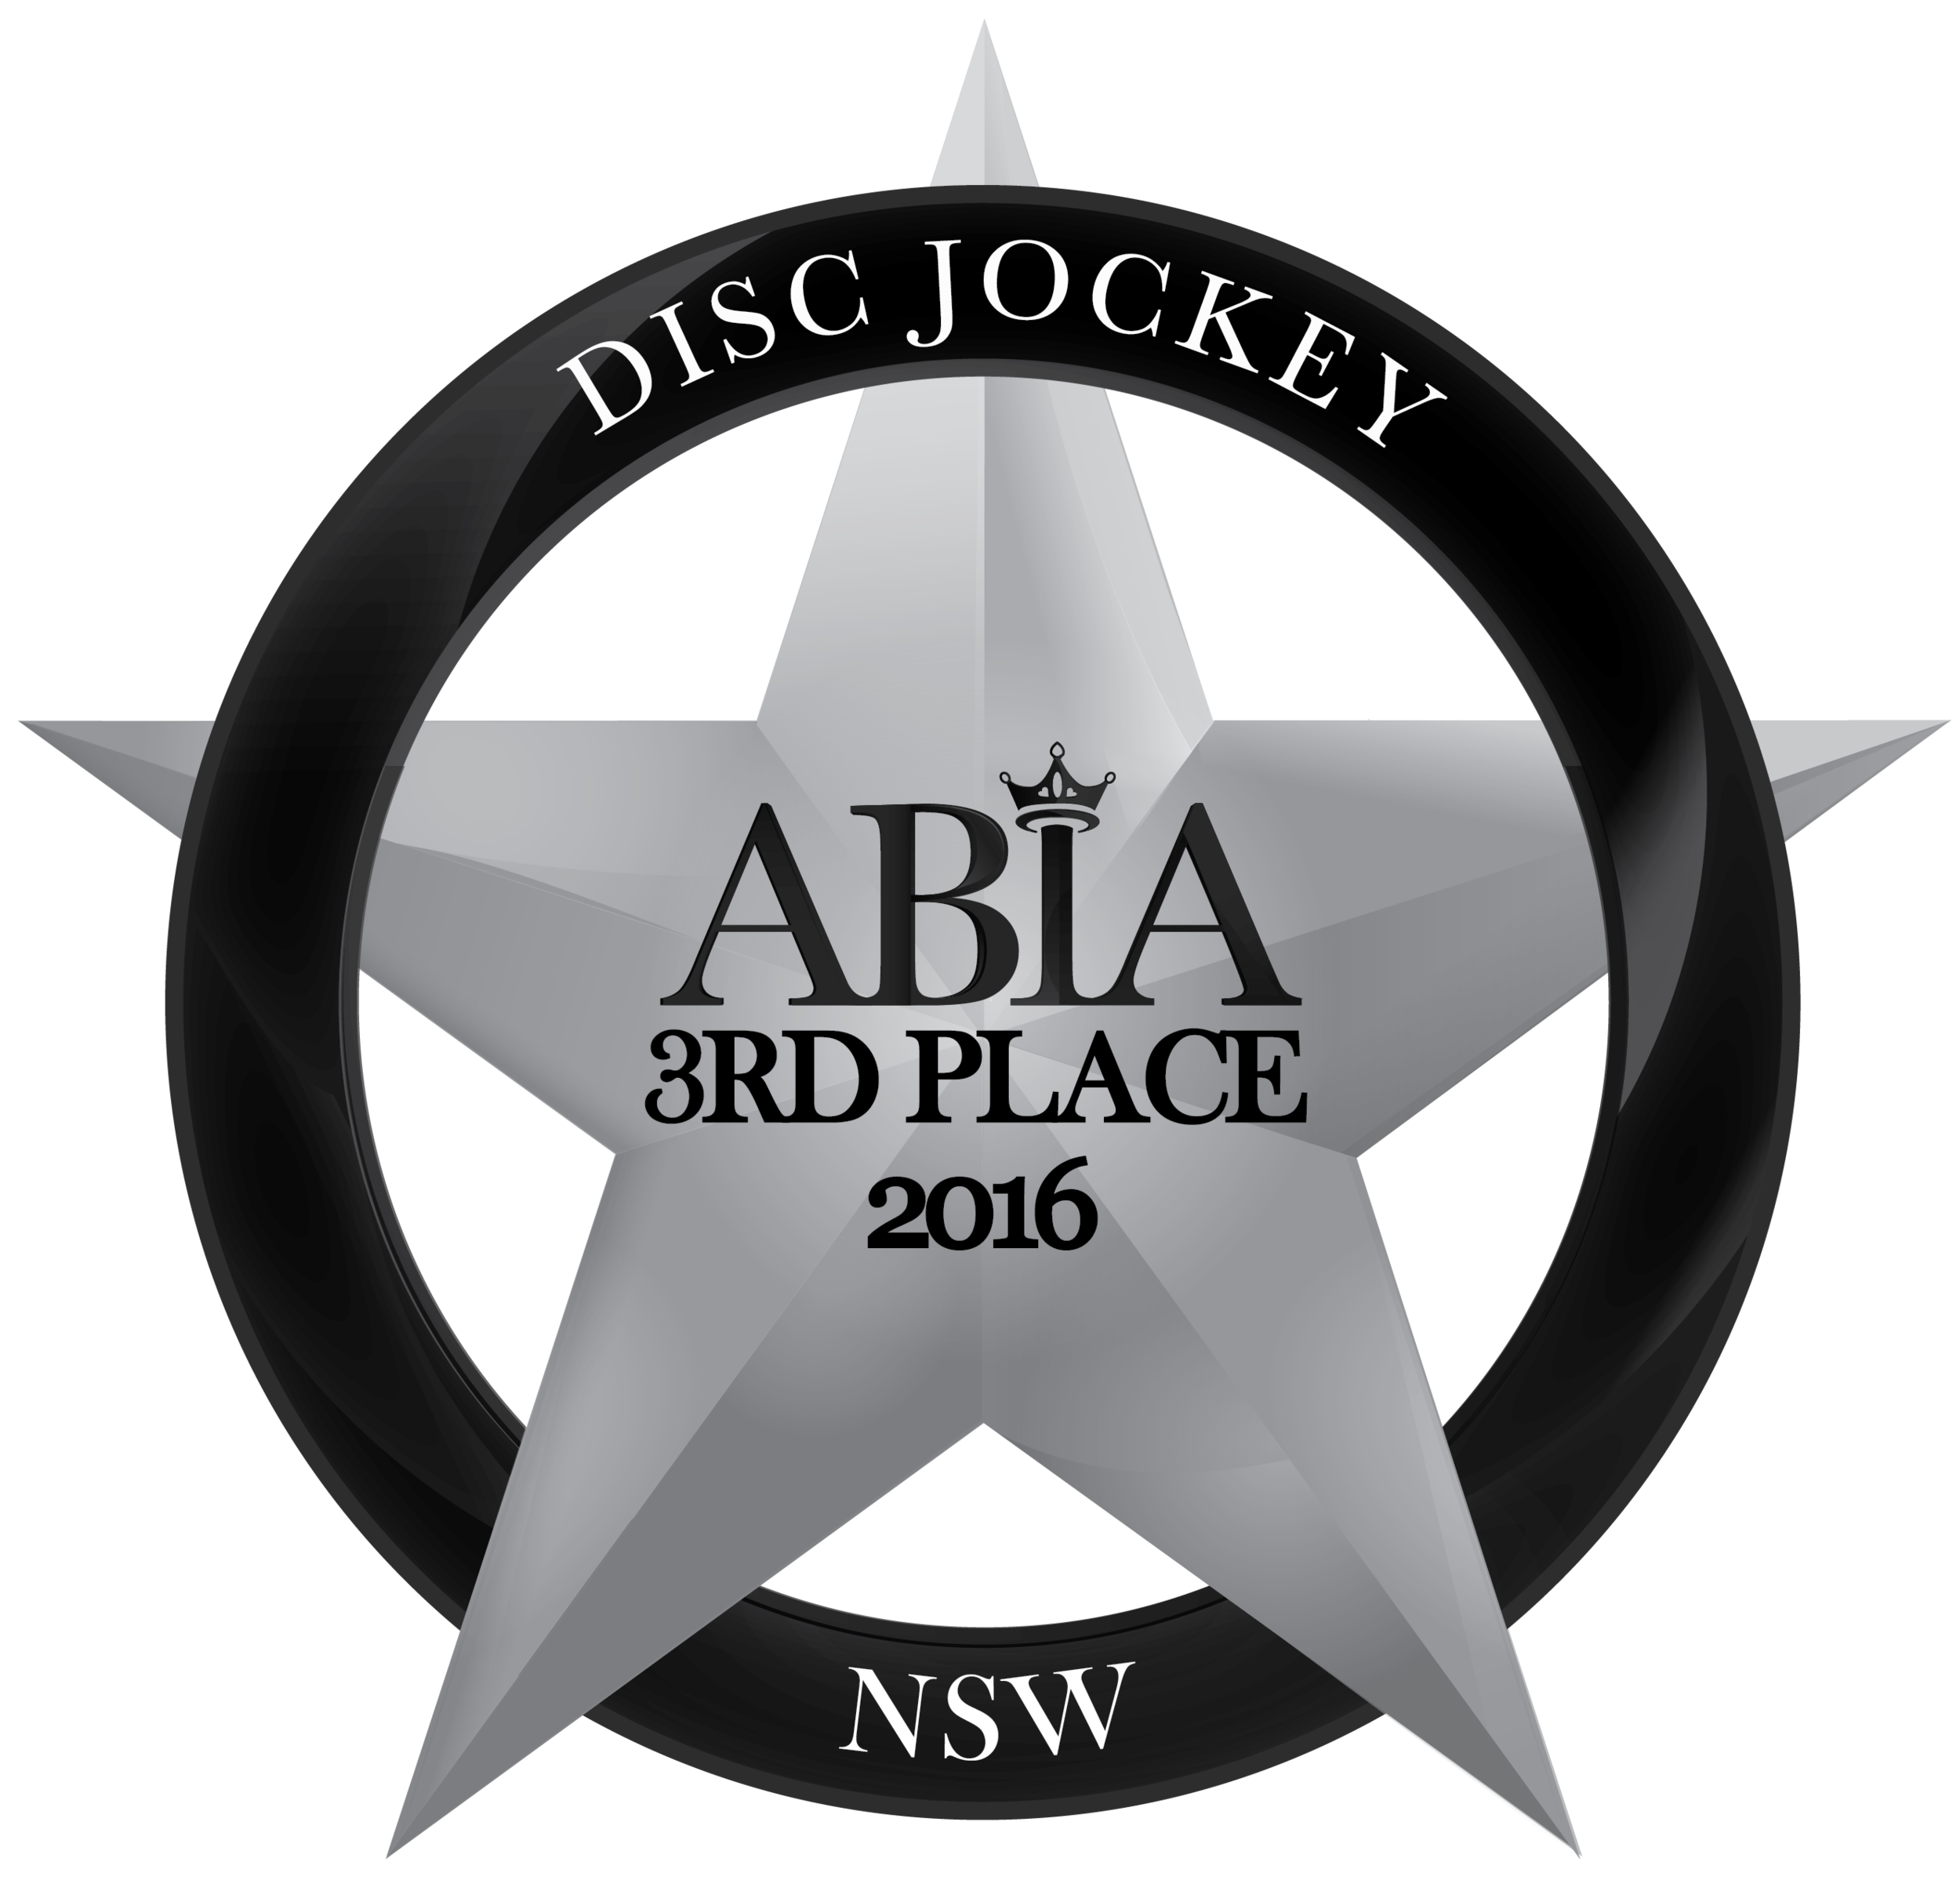 DiscJockey-ABIA-Award-2016_3RD PLACE.png